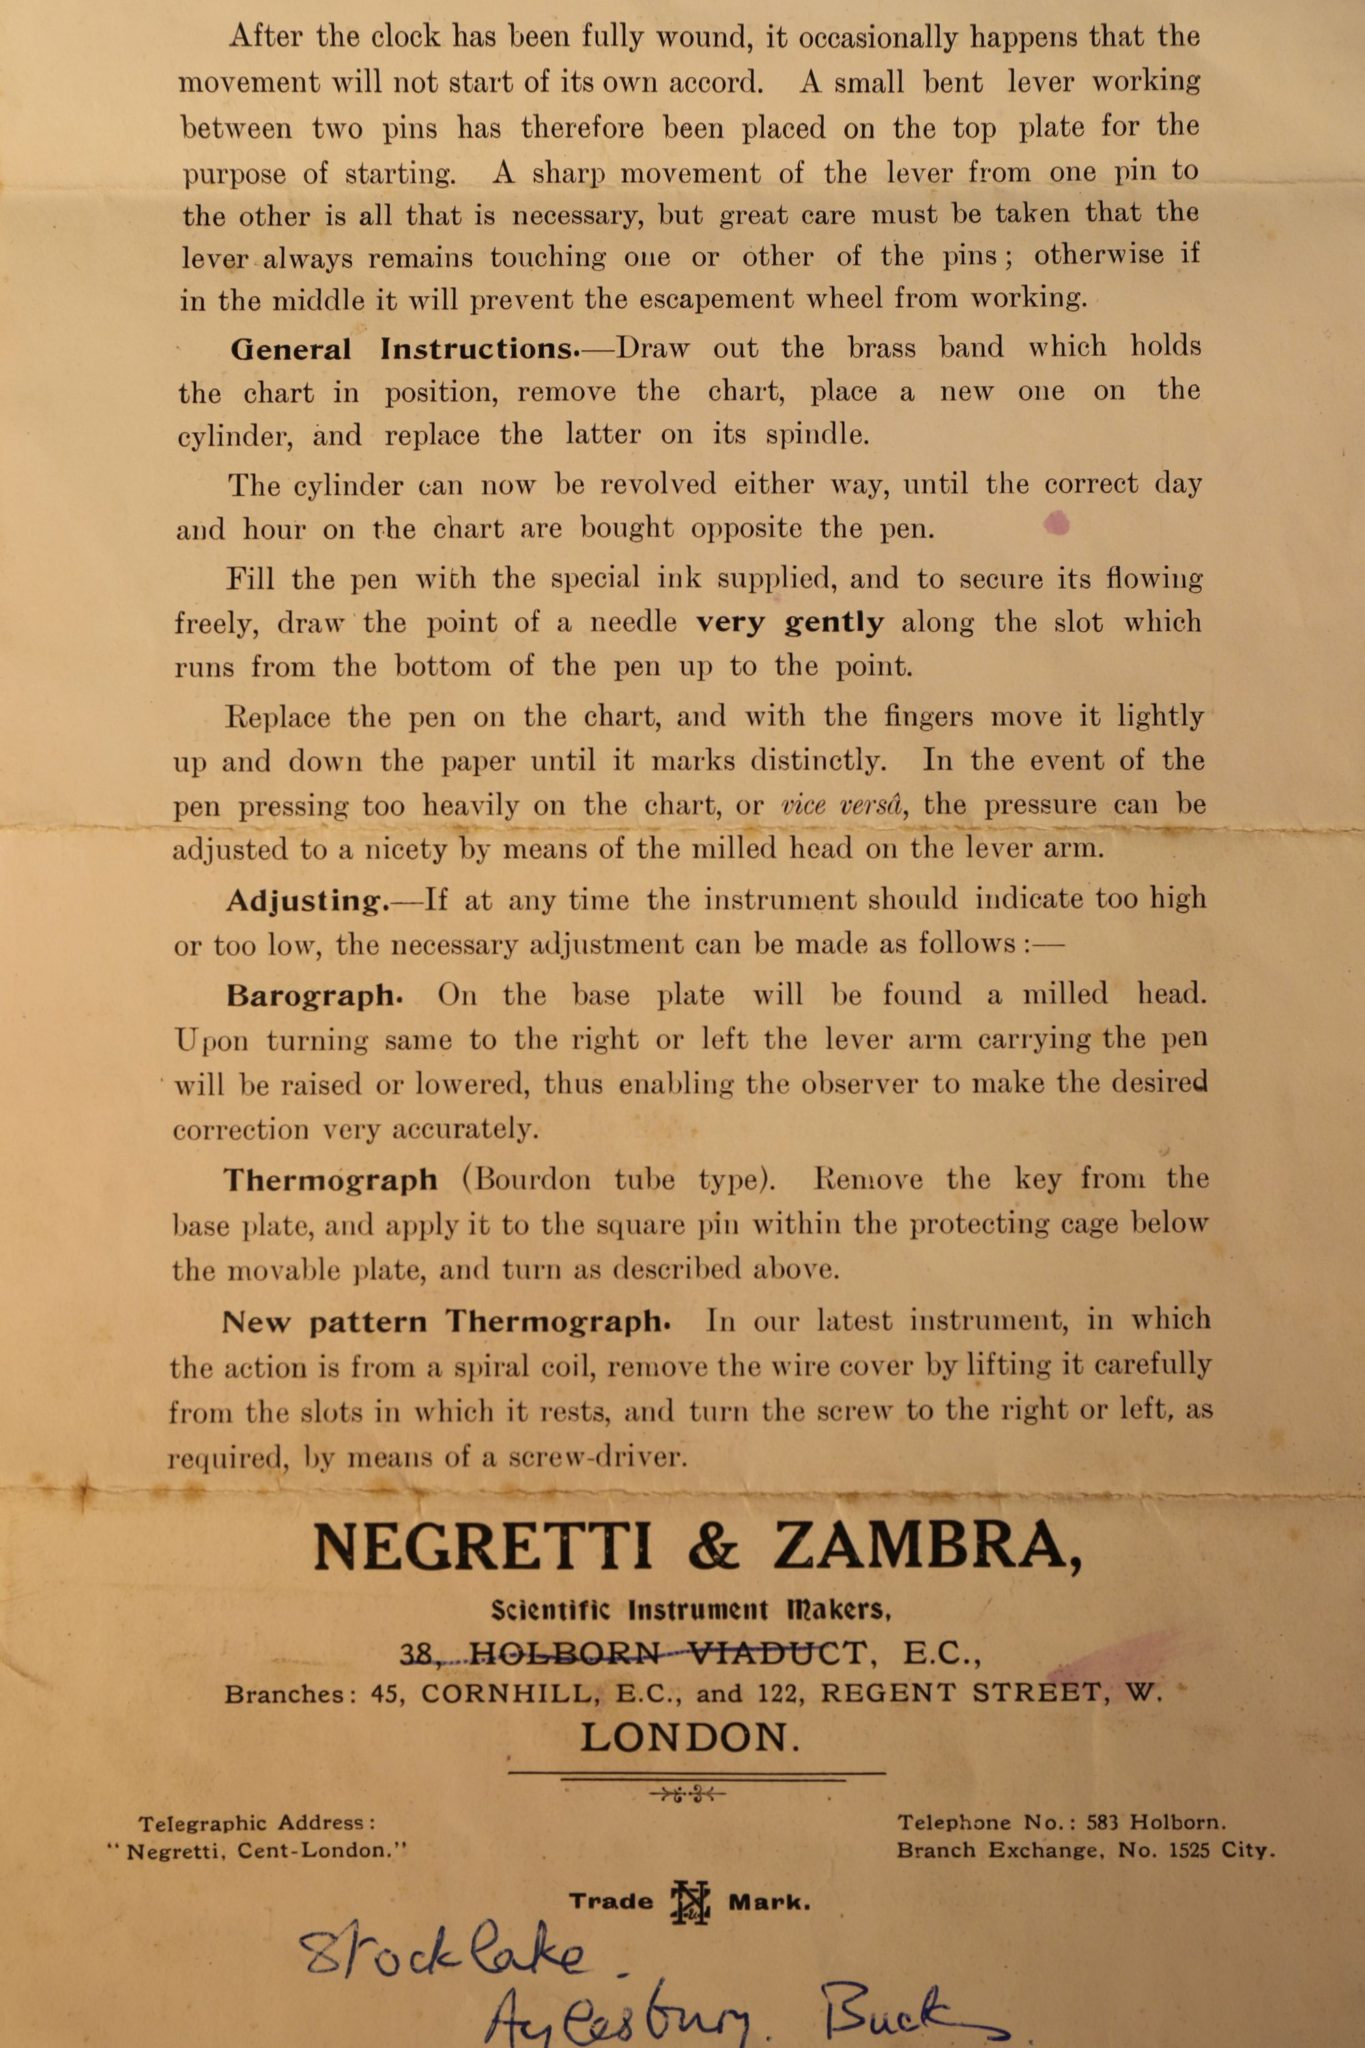 Image of Negretti & Zambra Barograph Instructions